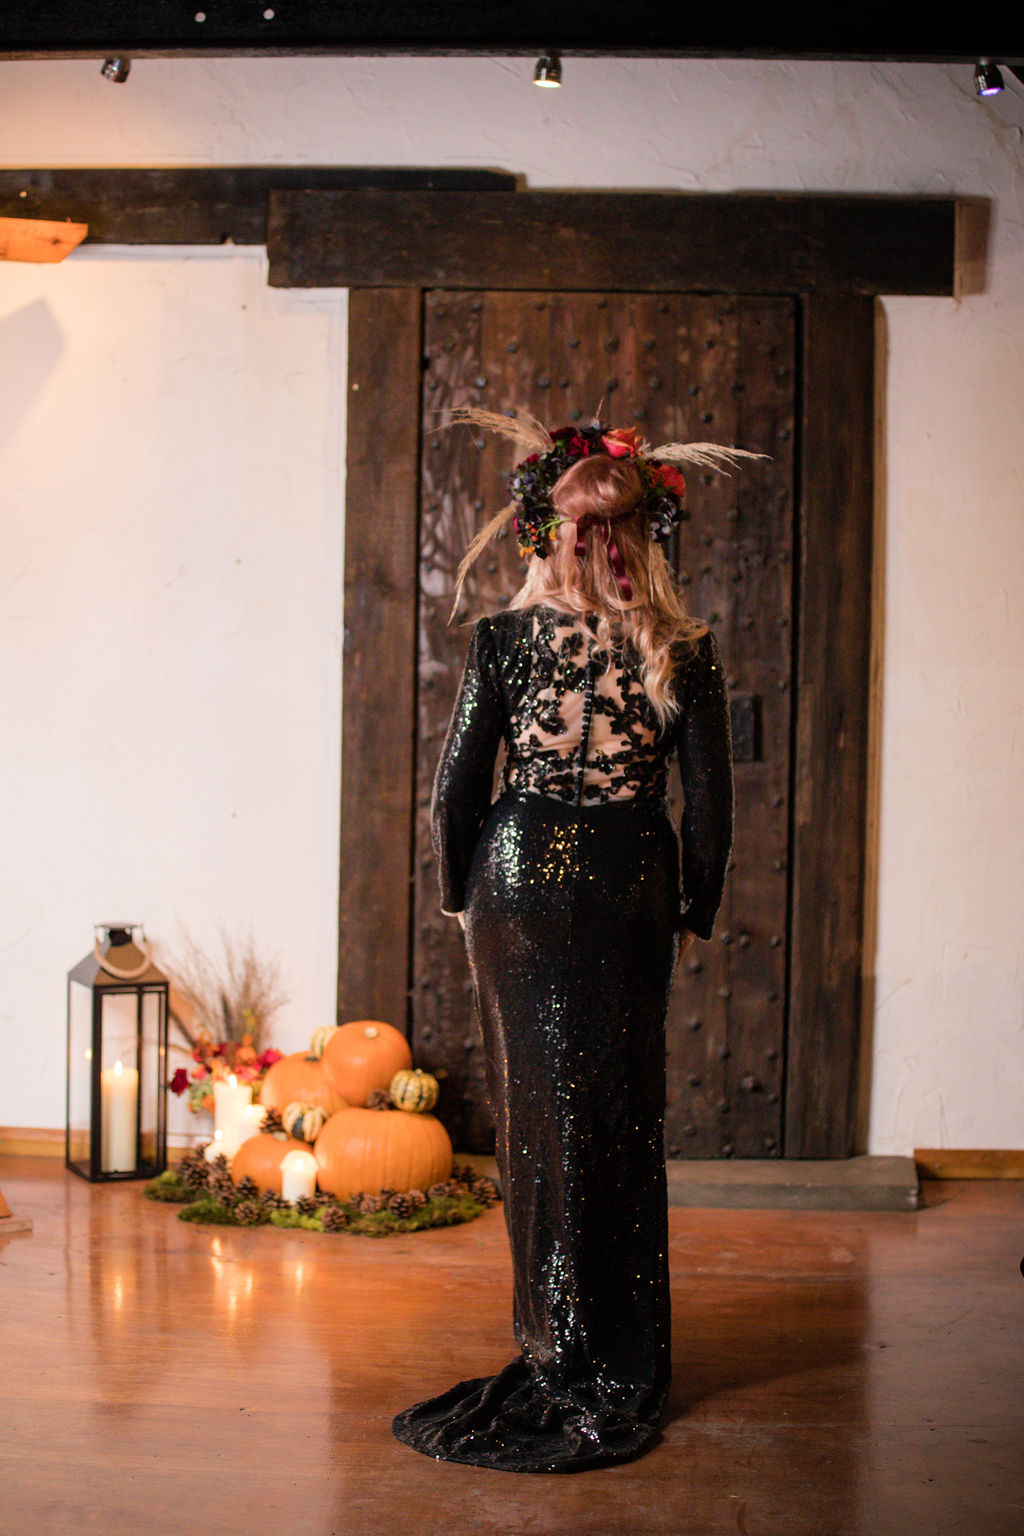 dark autumn wedding - autumn flower crown - bridal flower crown - black wedding dress - autumnal bridal wear - sequined wedding dress - gothic wedding dress